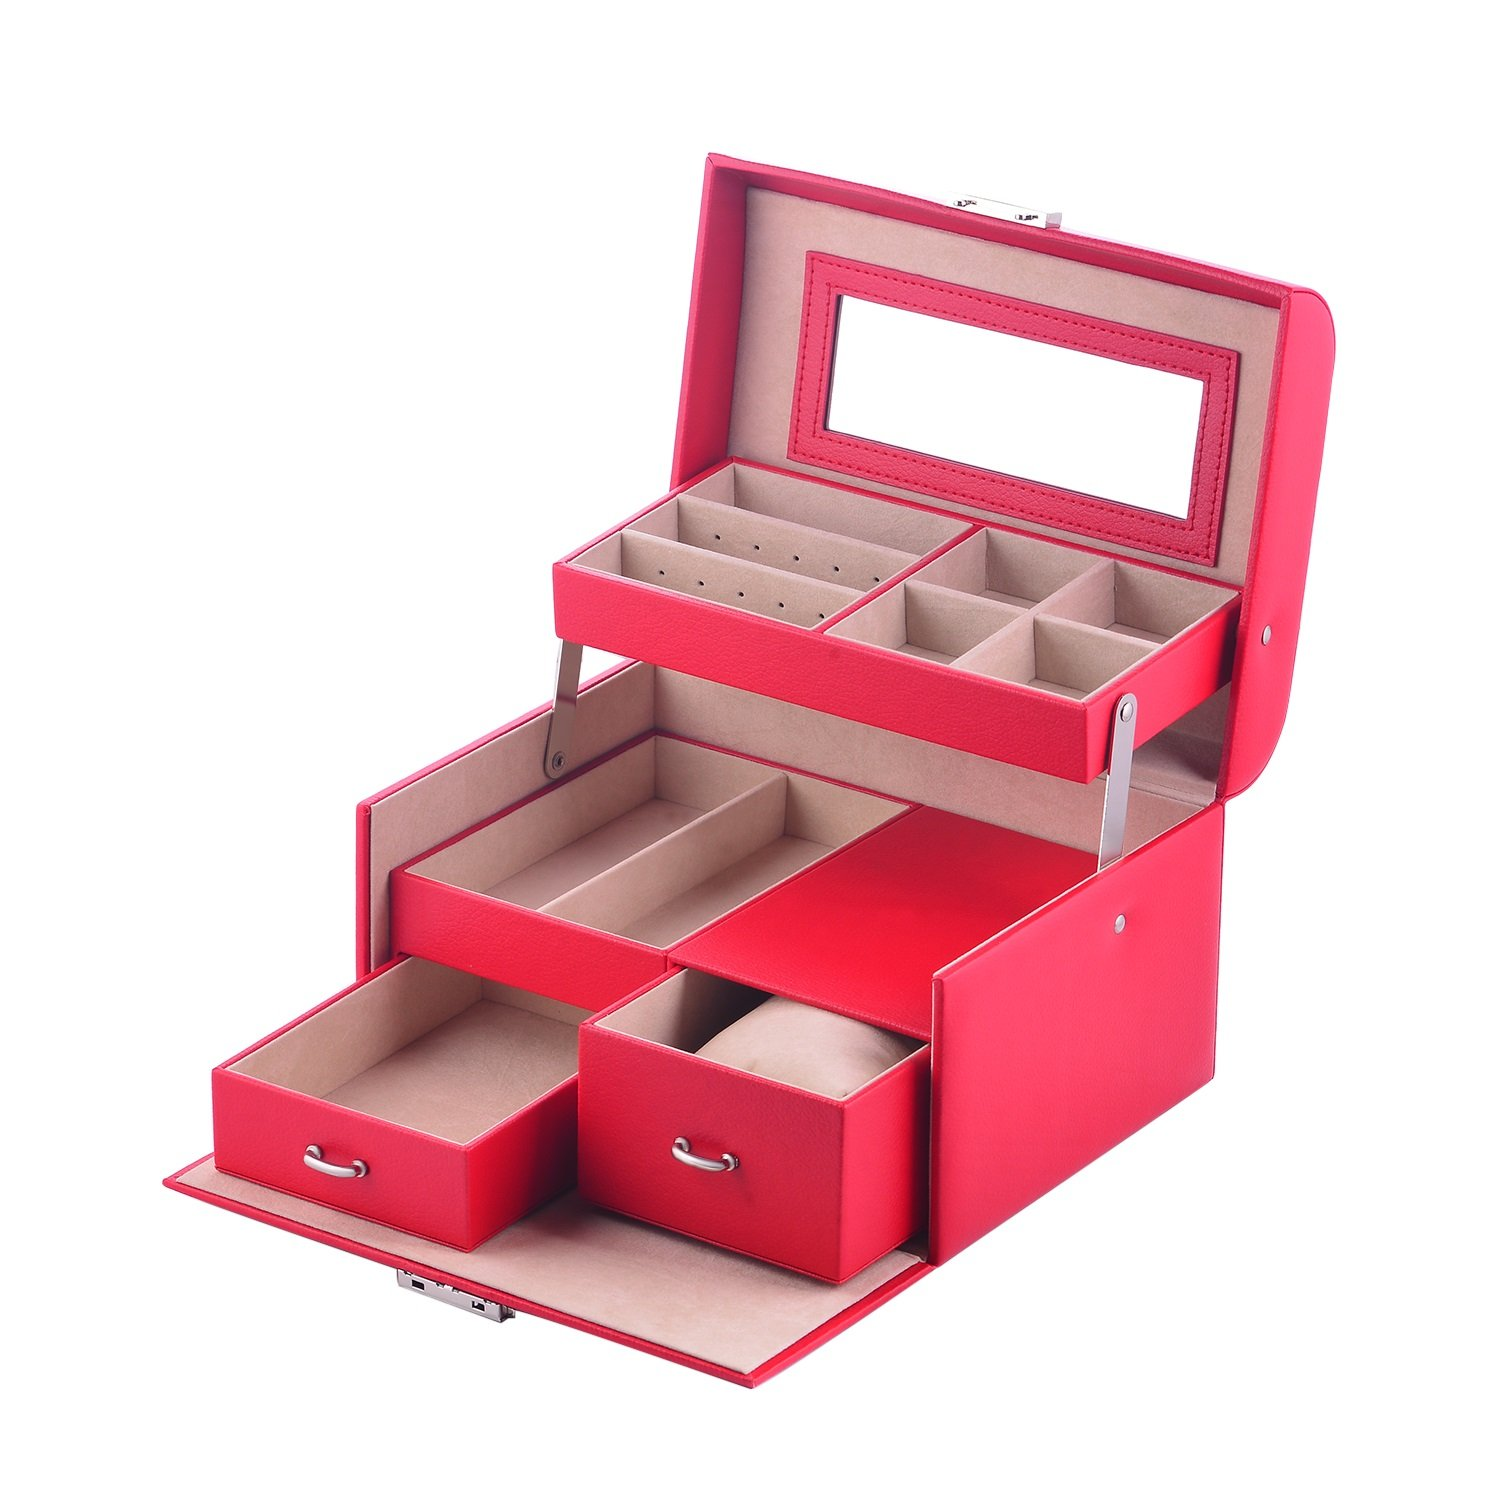 MBLife Laminated Leather Drawer Jewelry Box Organizer Lockable Storage Case with Mirror S10229Y